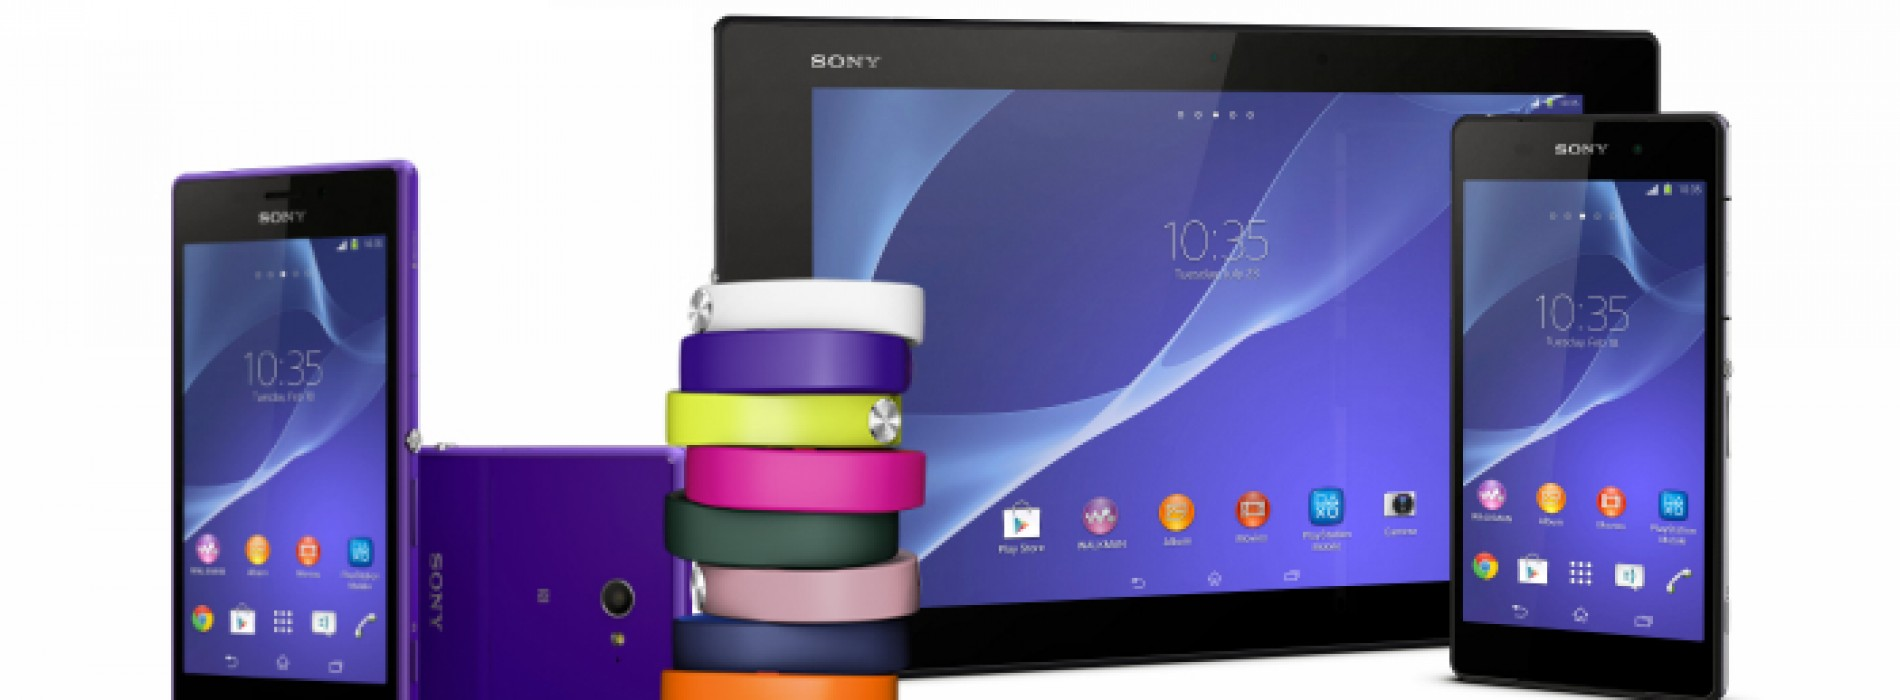 Sony unwraps smartphones, tablet, and wearable device for MWC